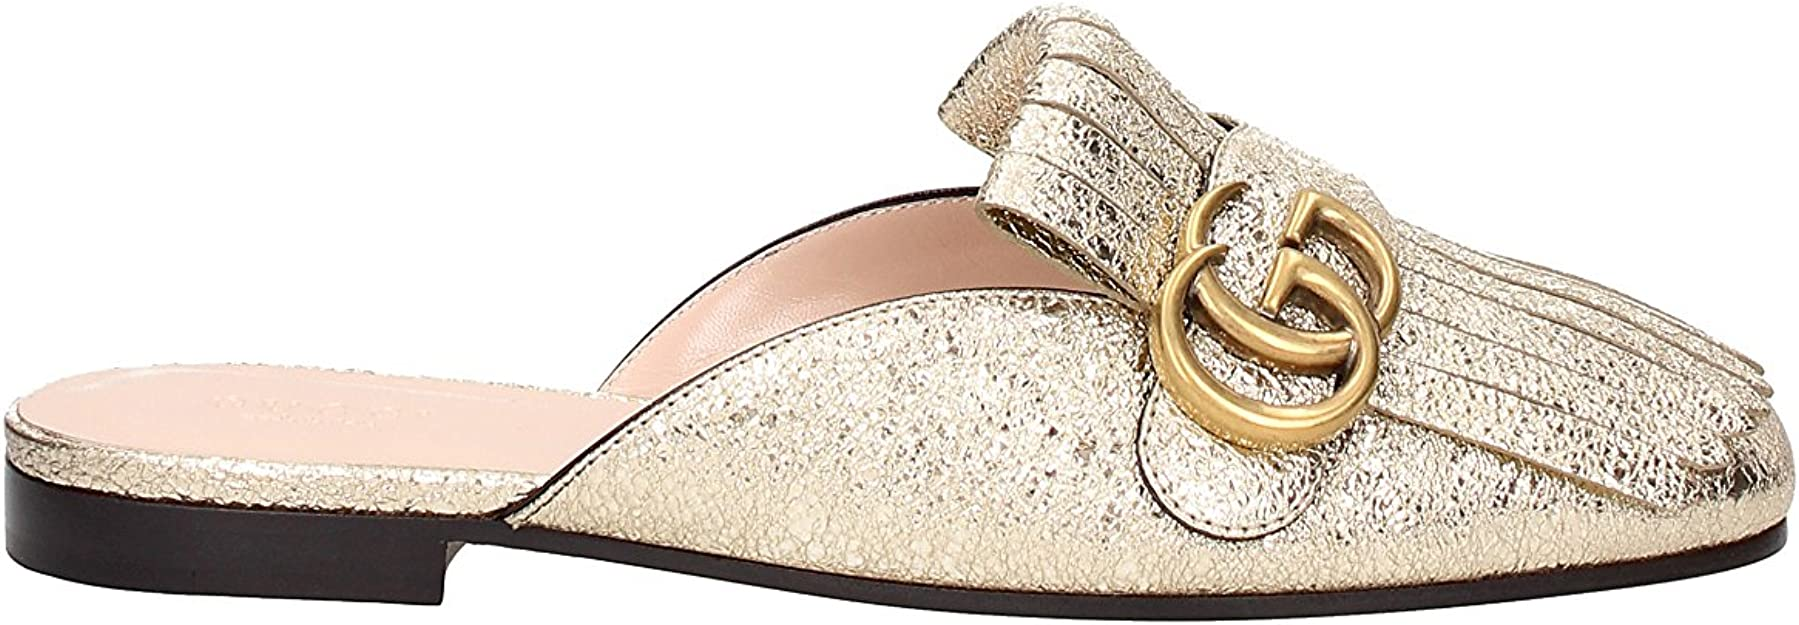 Gucci Slippers Women - Leather